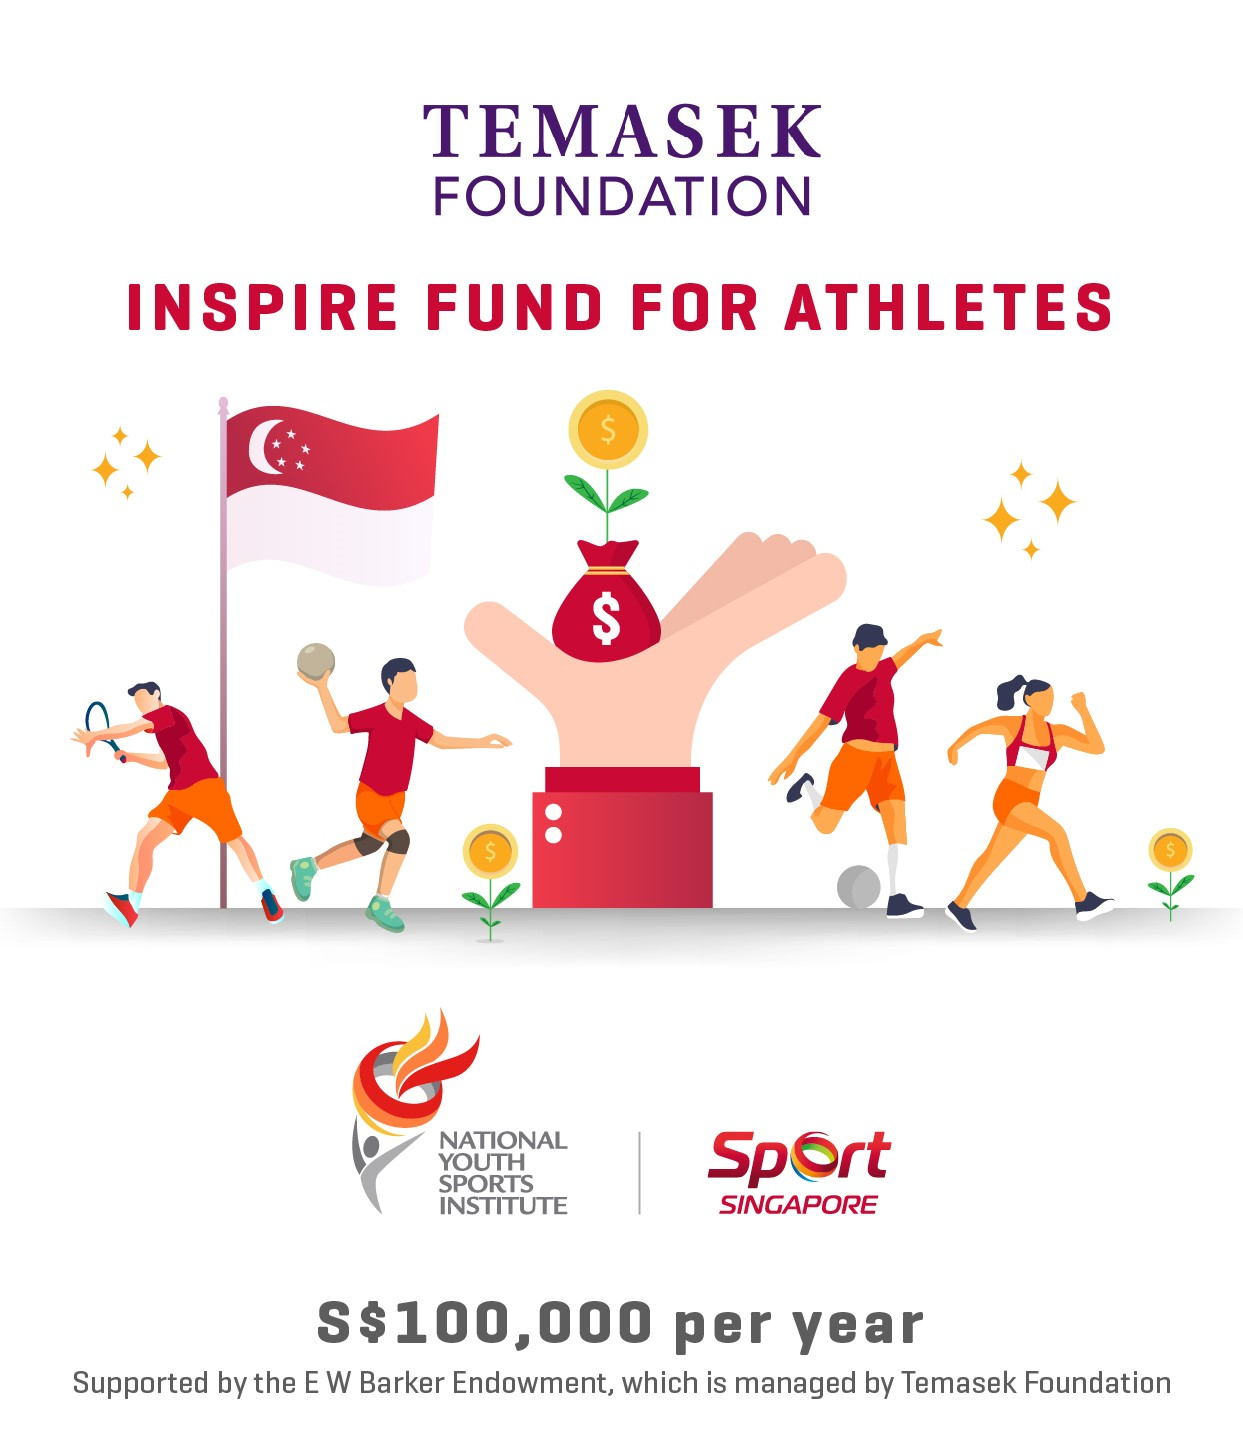 Temasek Foundation Inspire Fund for Athletes Infographics 2 d2 100121-01